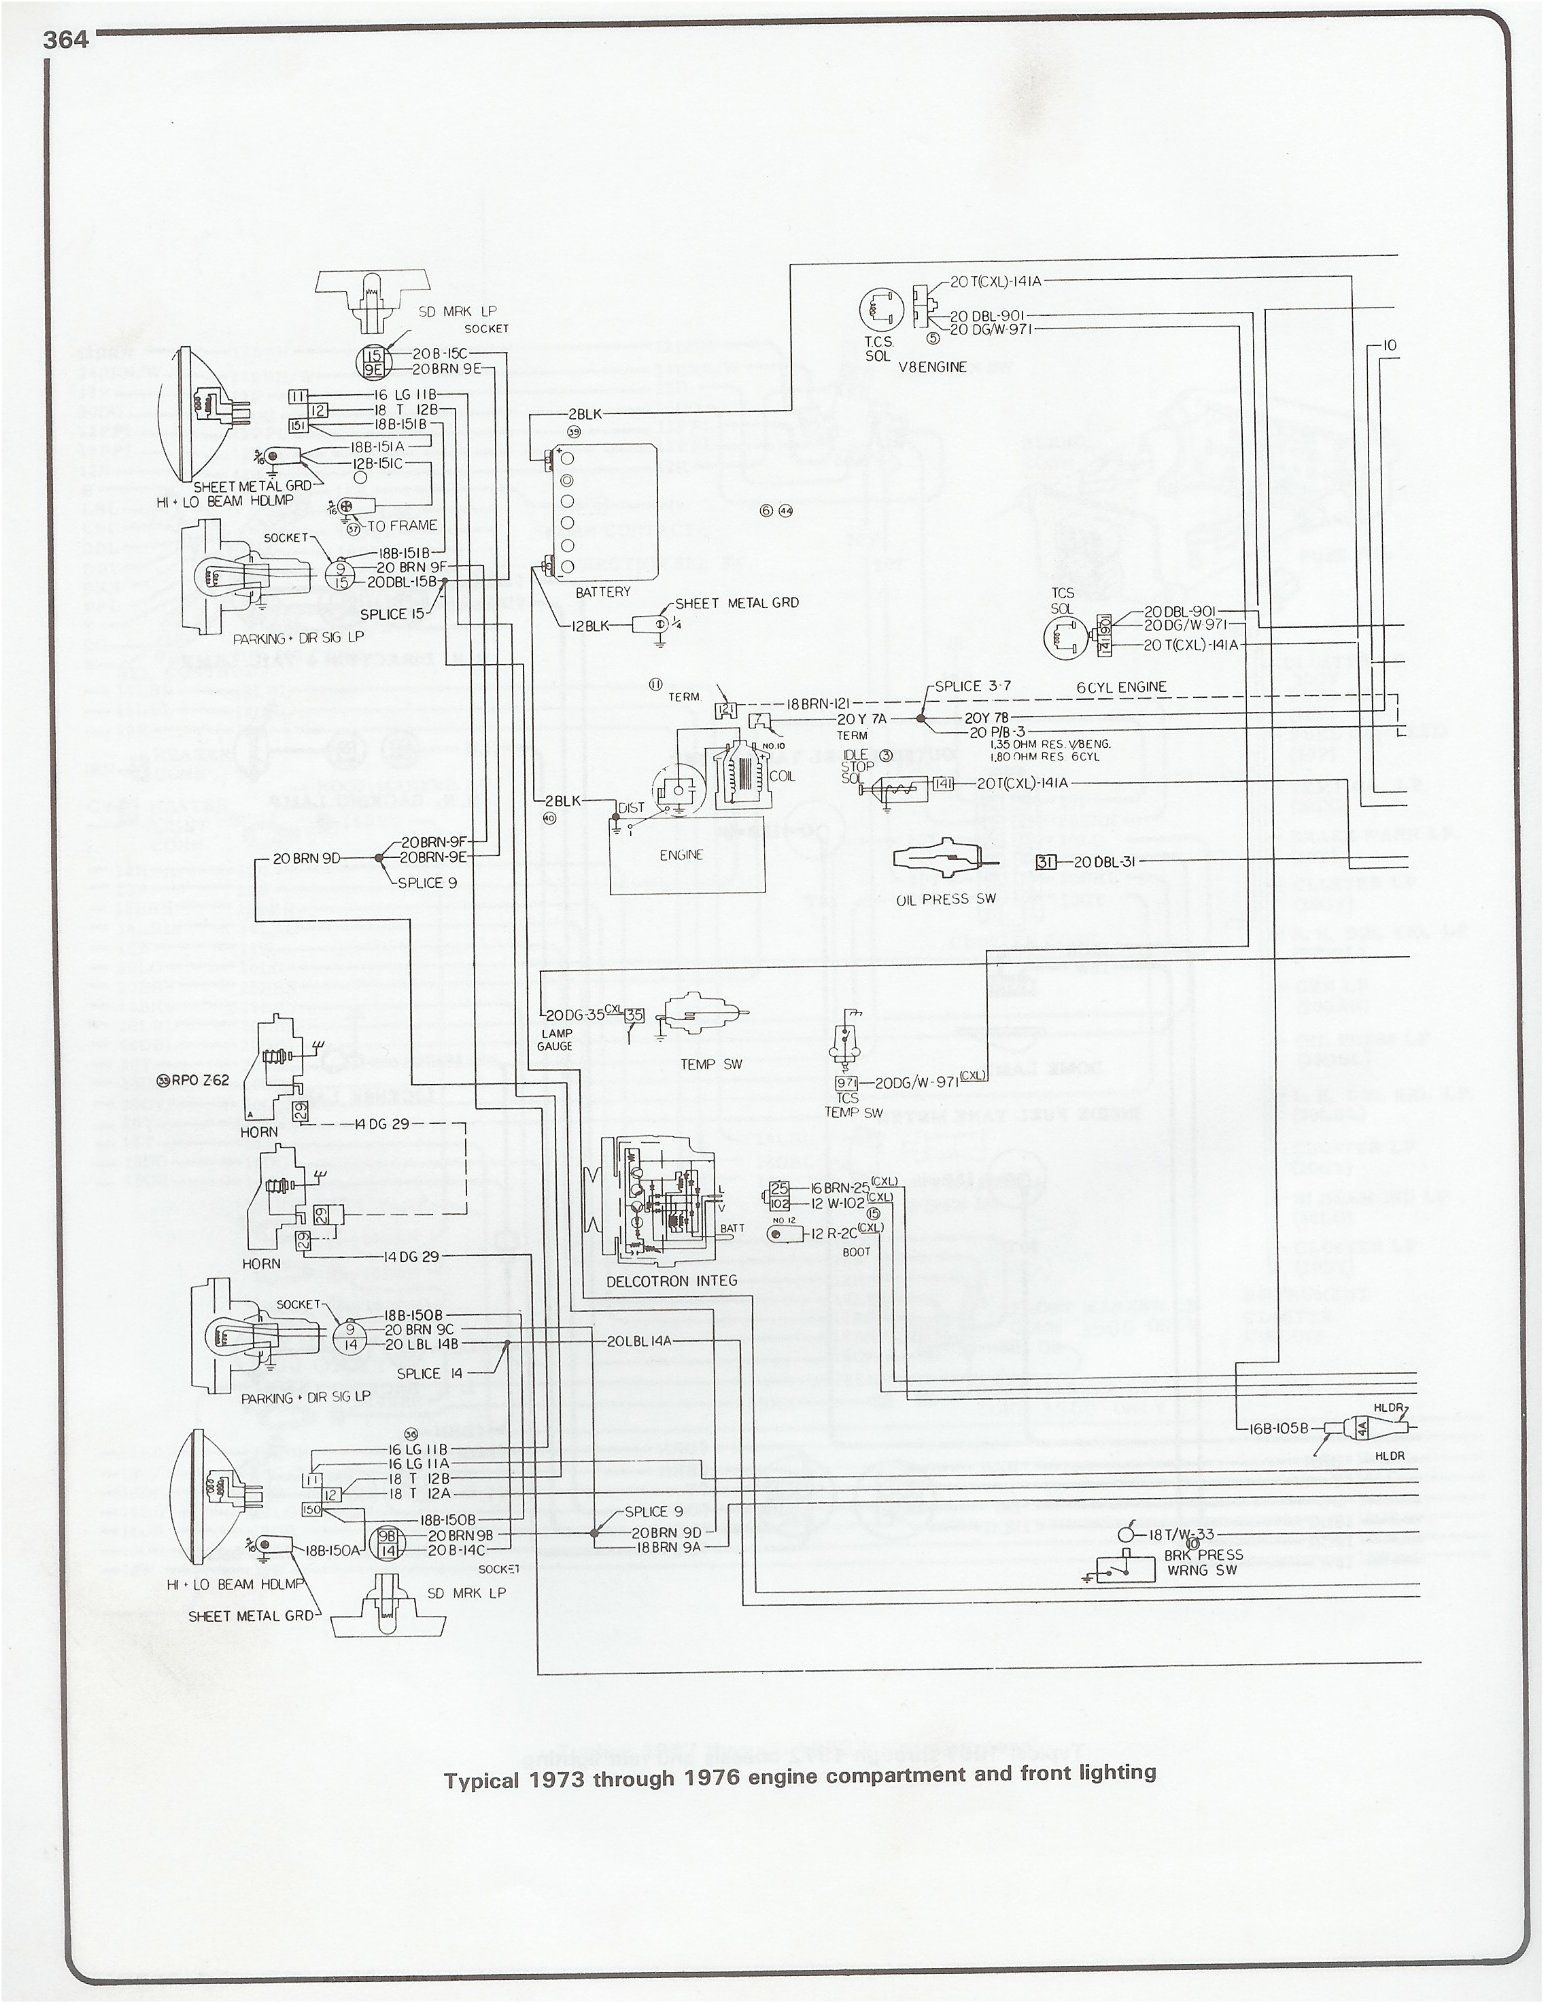 fuse box diagram renault kangoo